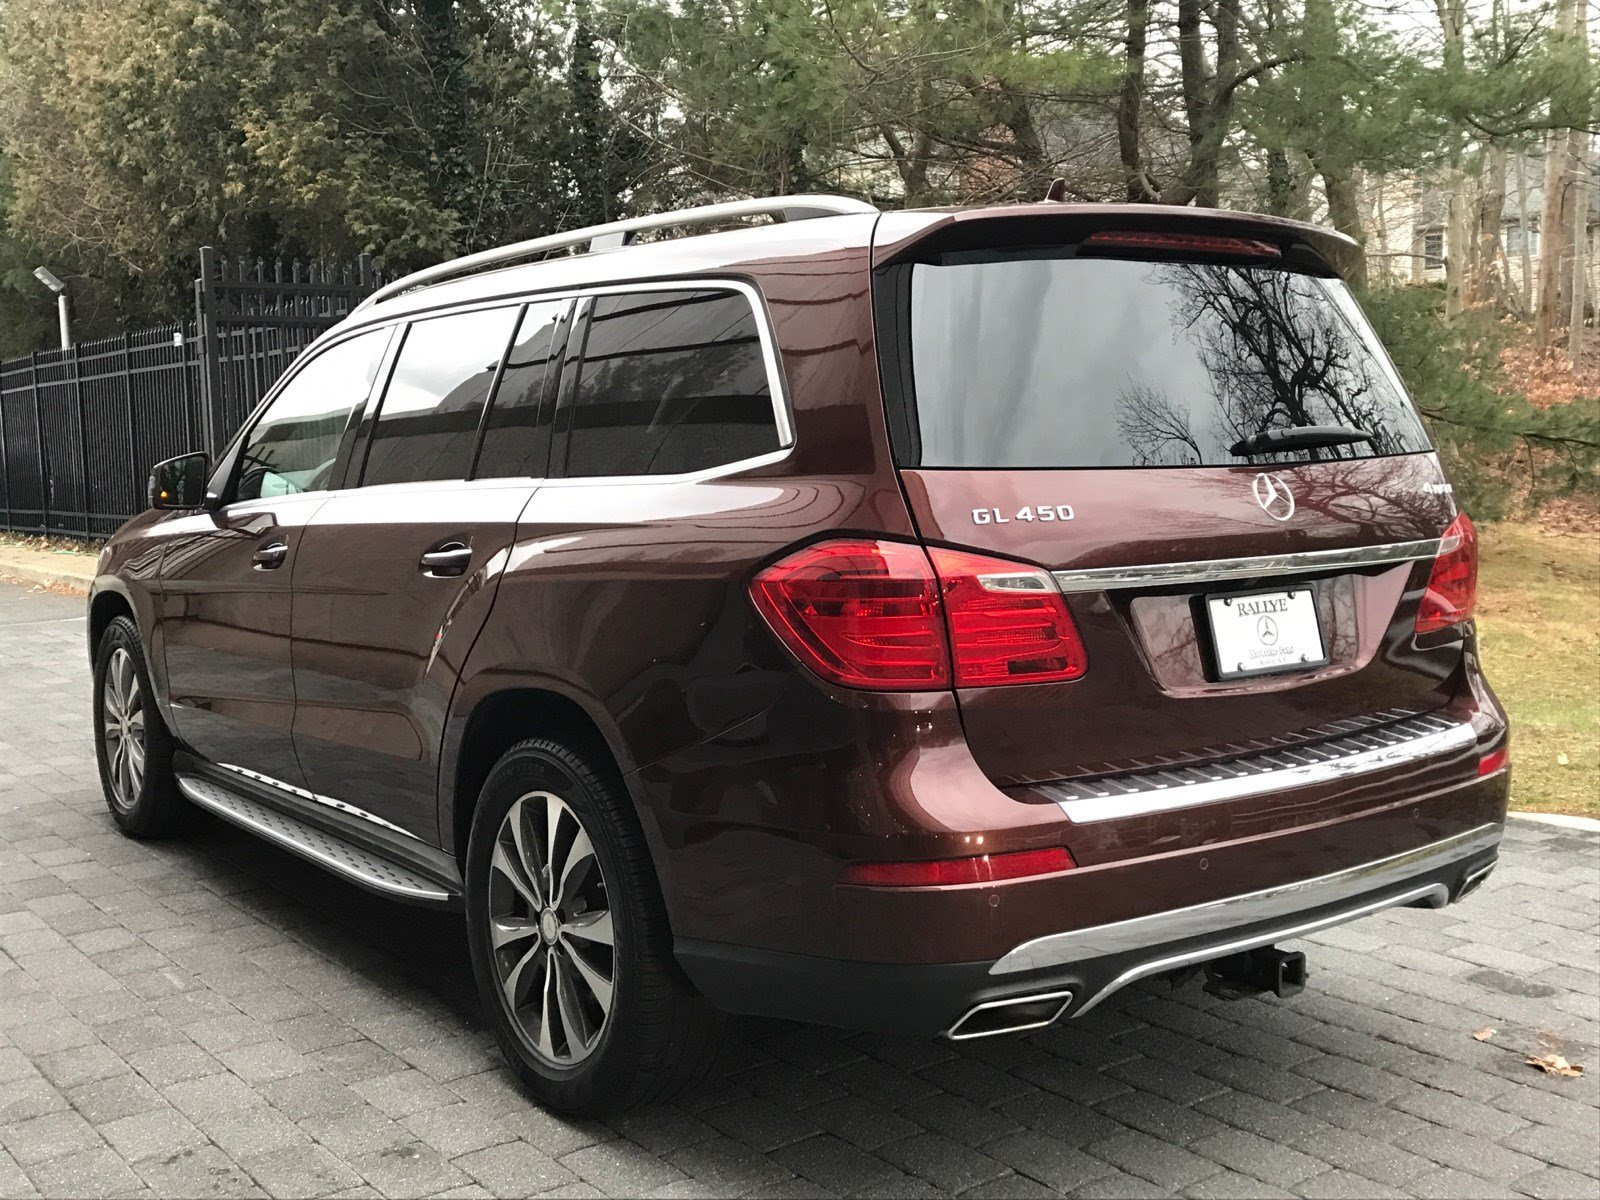 Certified Pre-Owned 2014 Mercedes-Benz GL GL 450 SUV in ...